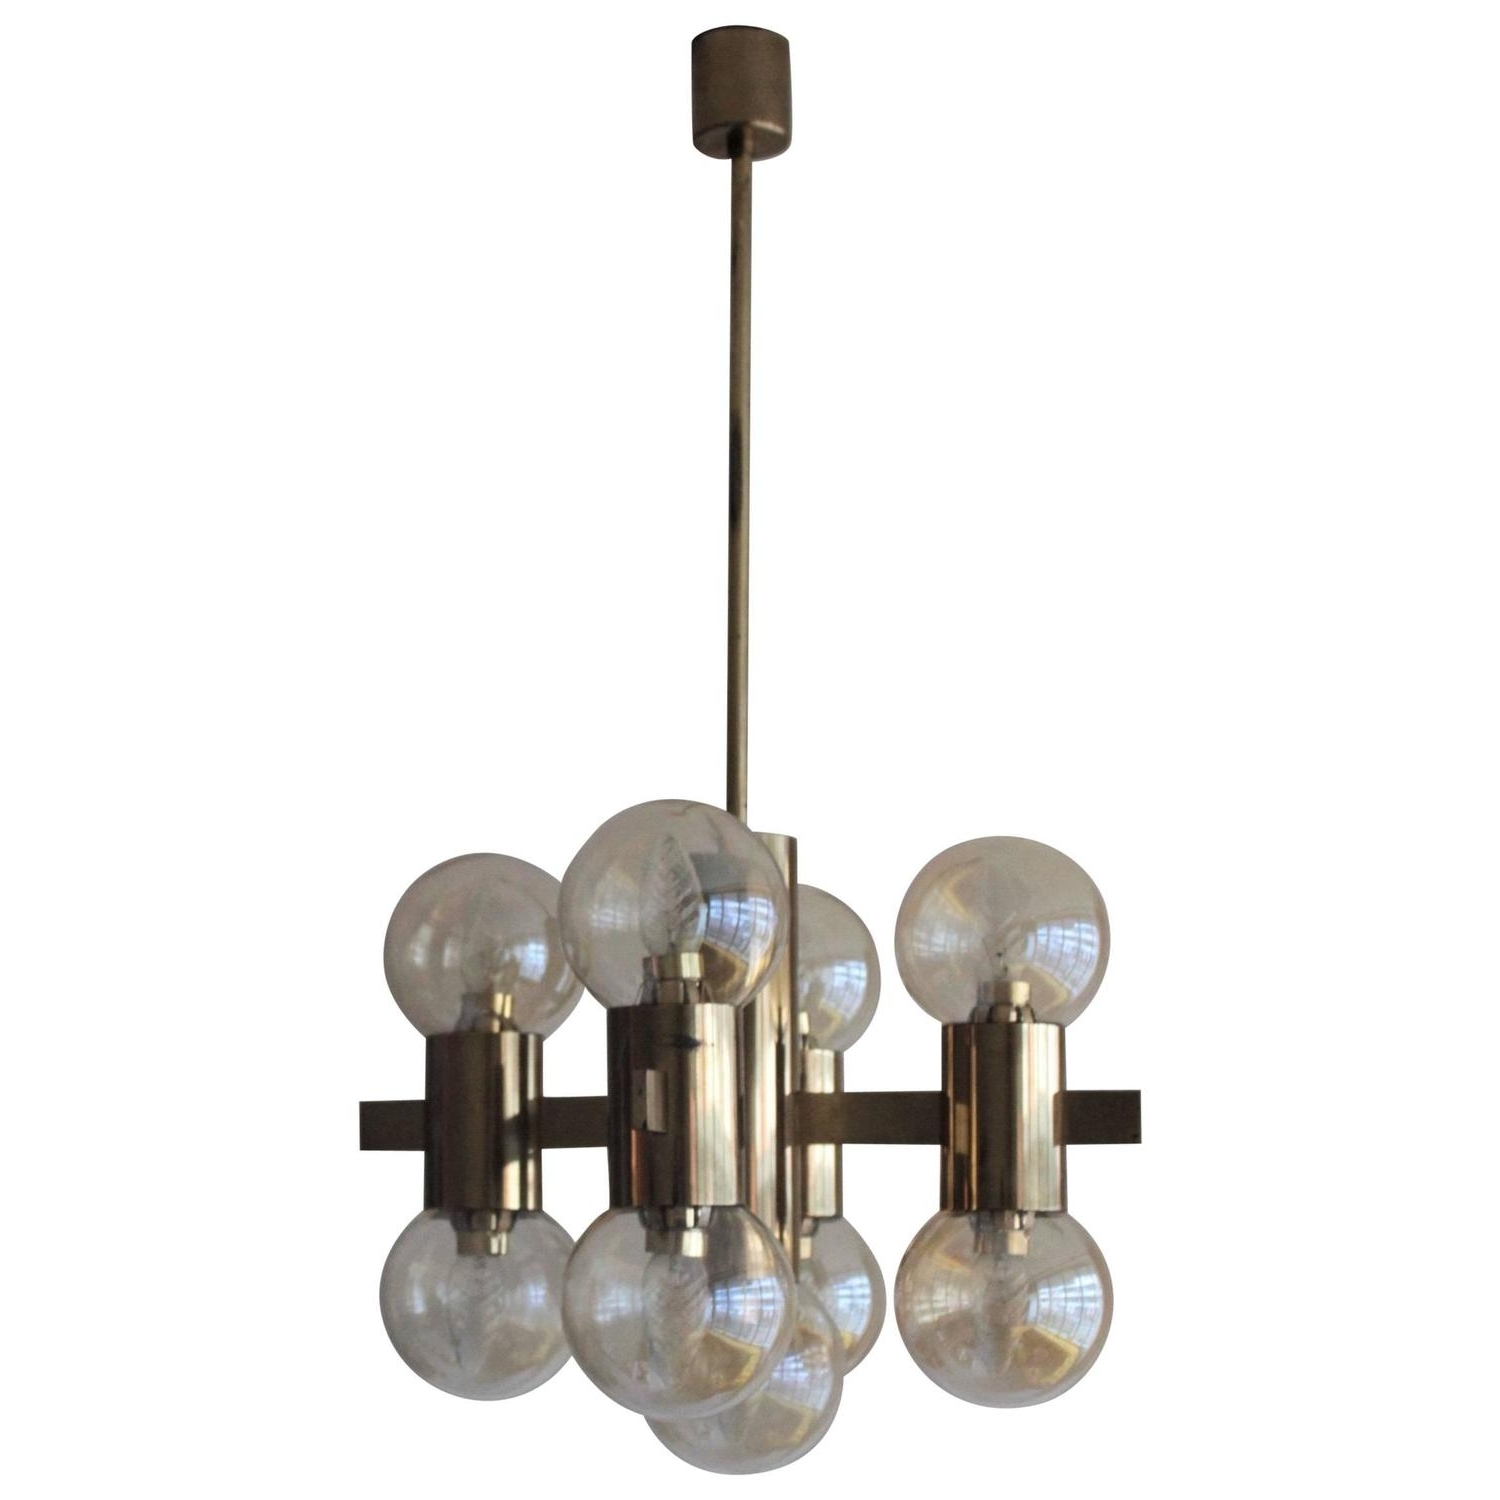 Italian Brass Smoked Glass Chandelier, 1970S For Sale At 1Stdibs Intended For Most Recently Released Smoked Glass Chandelier (View 6 of 20)